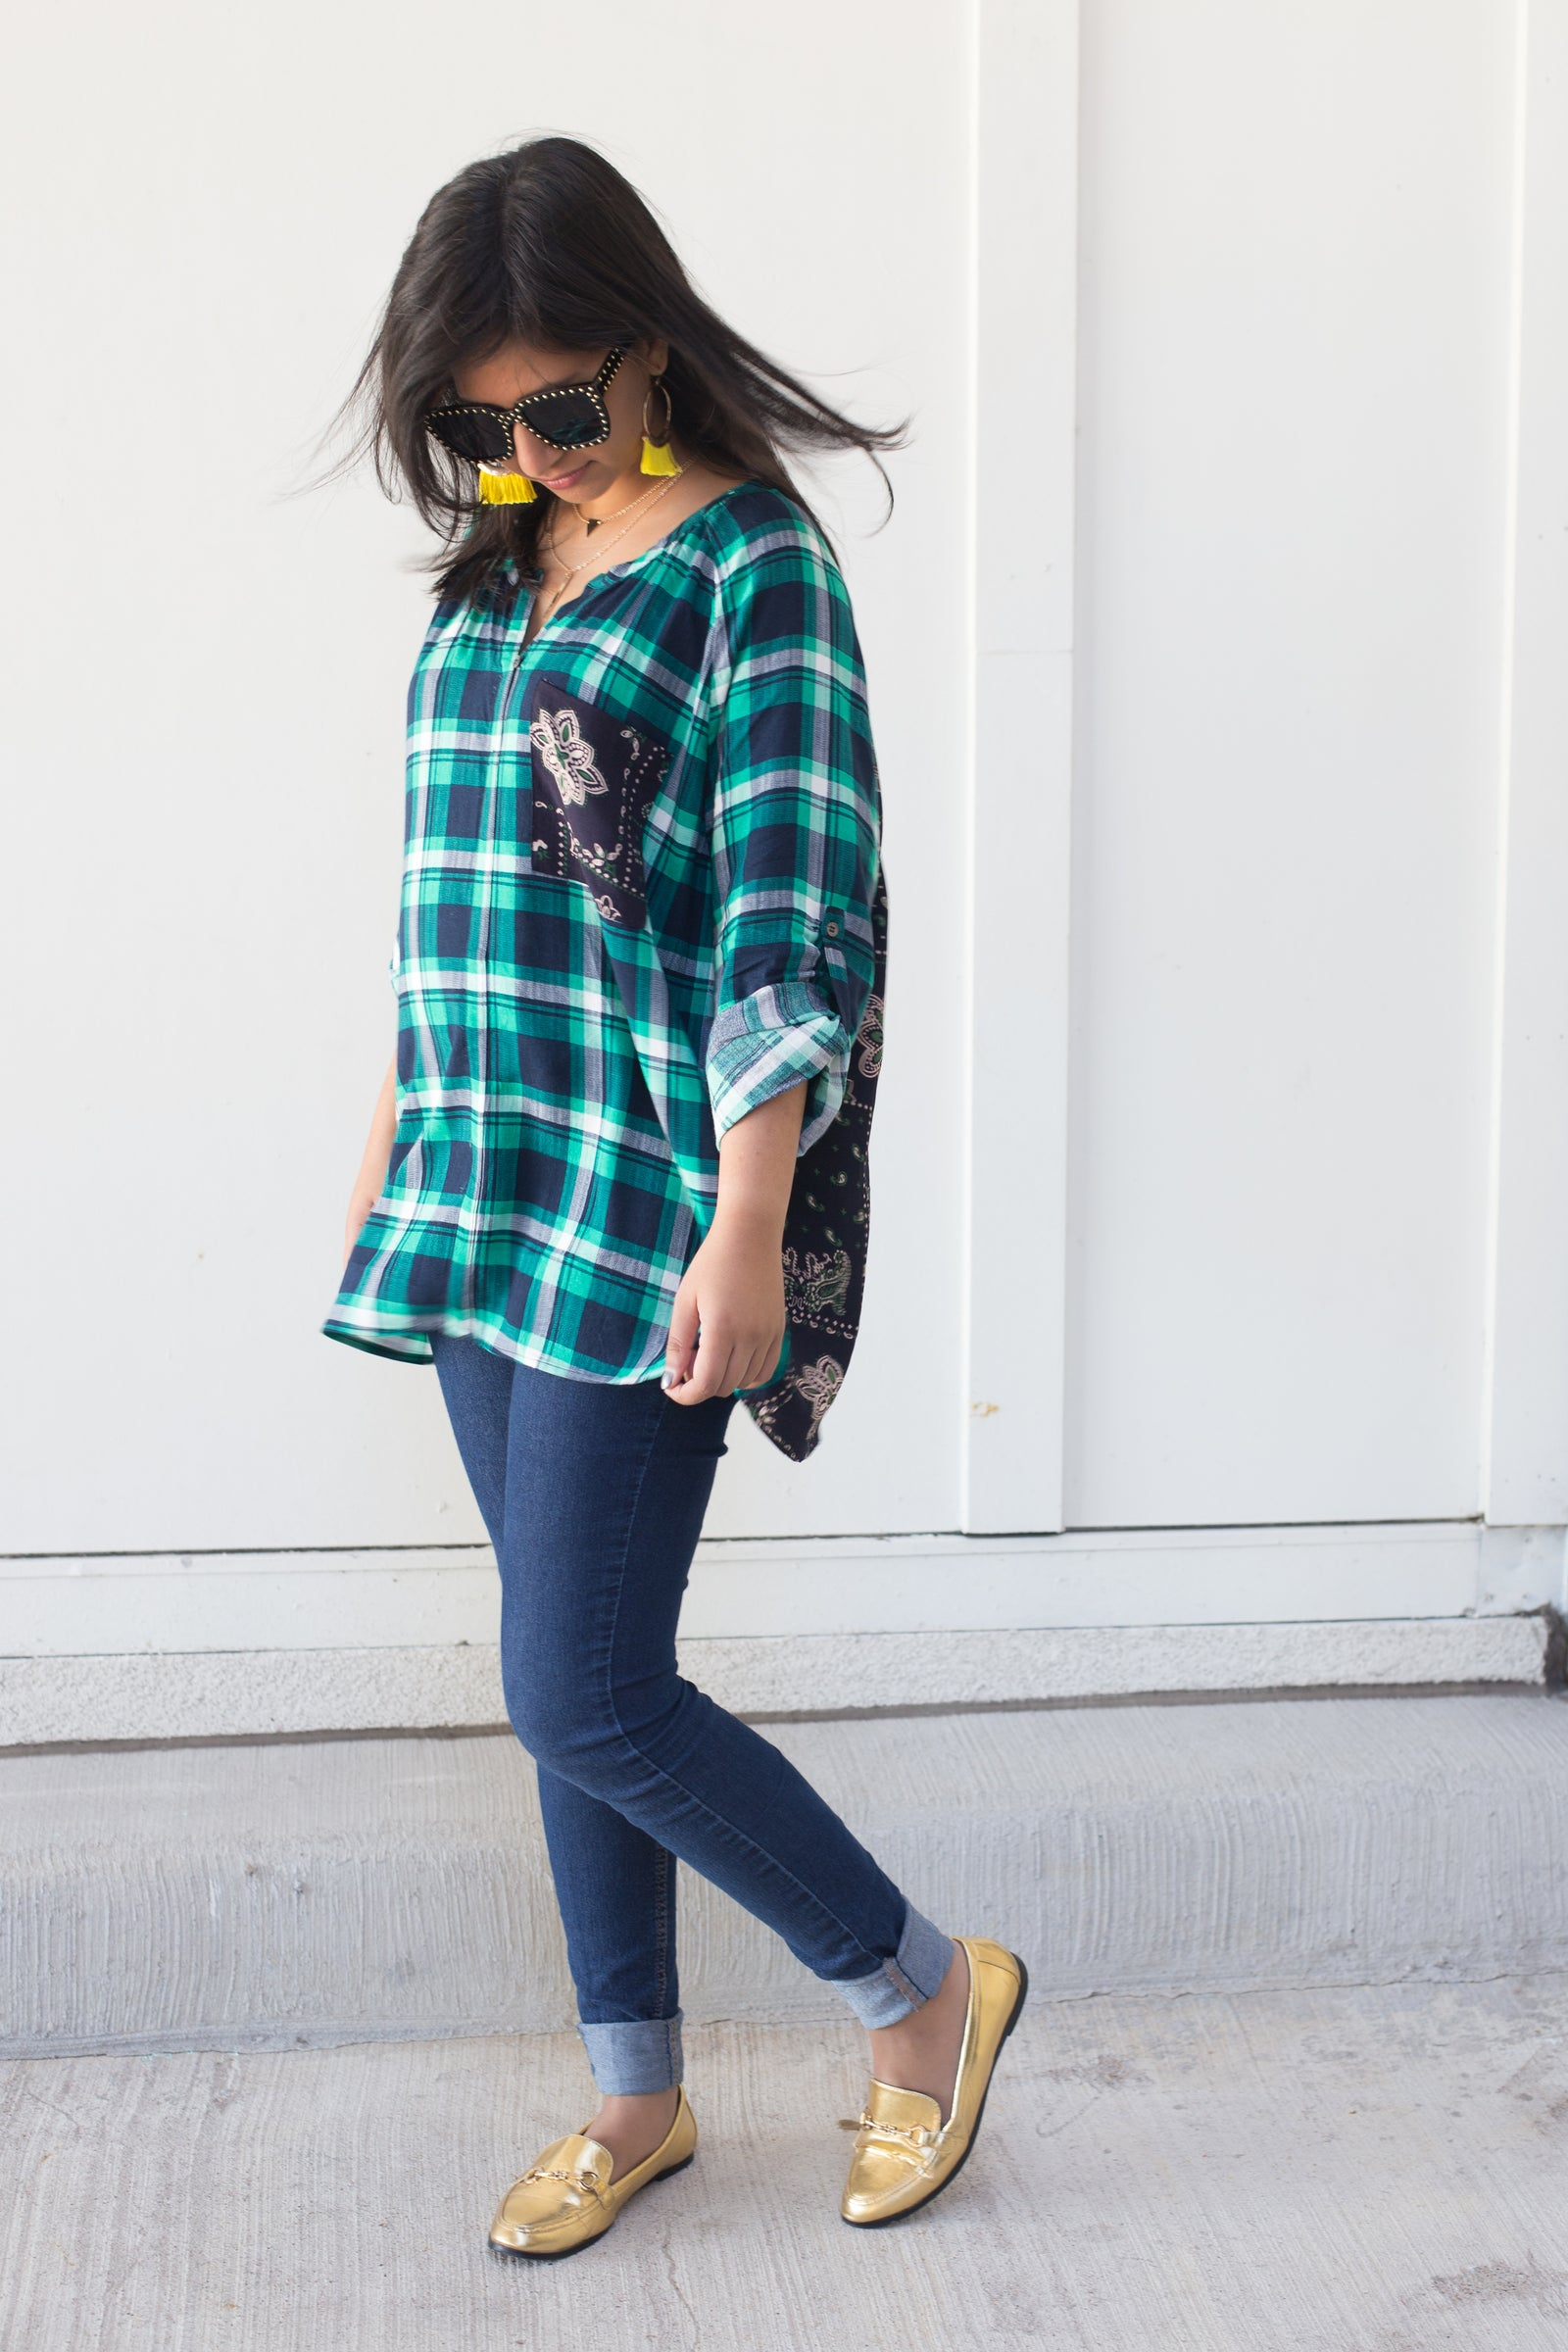 plaid shirt with paisley print on the back